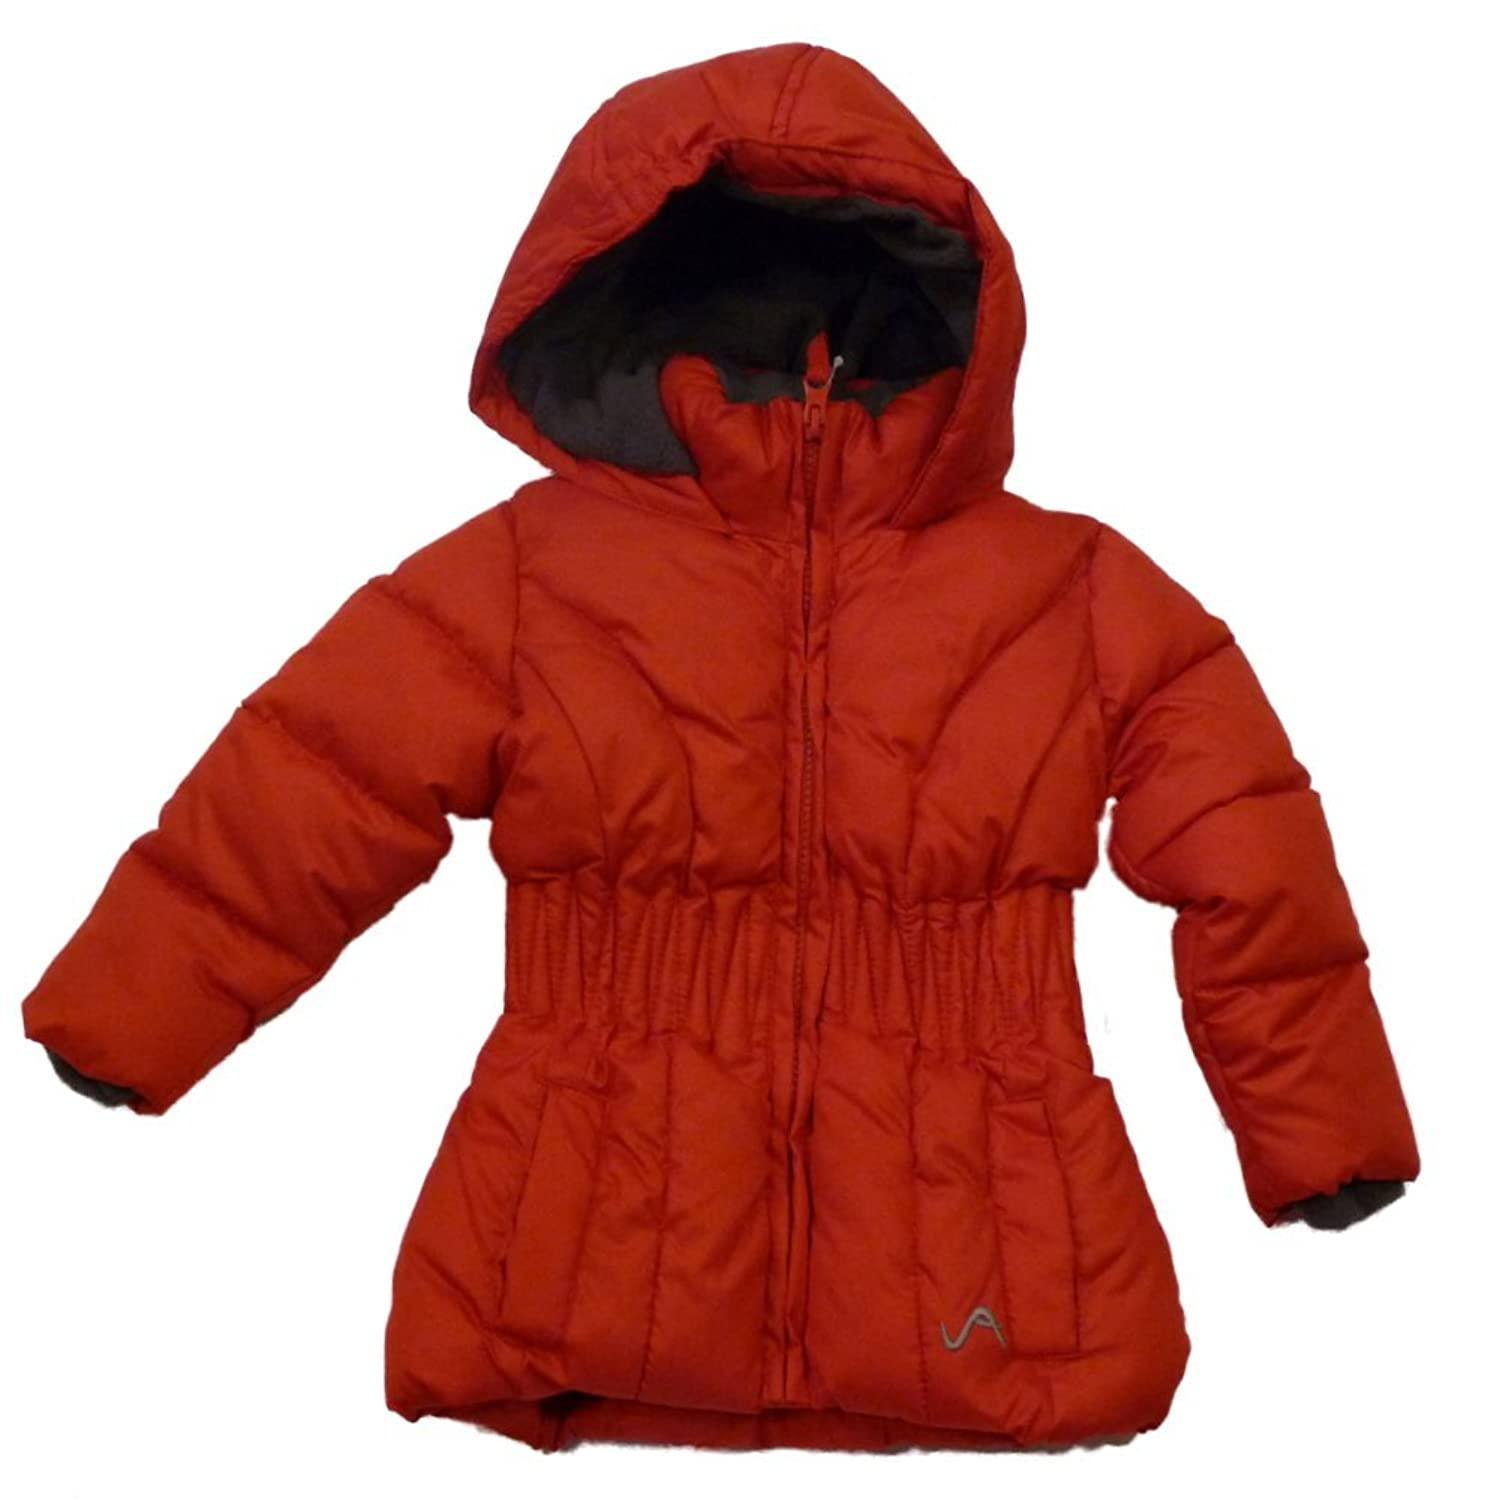 Amazon.com: Vertical 9 Infant Girls Red Winter Ski Jacket Hooded ...